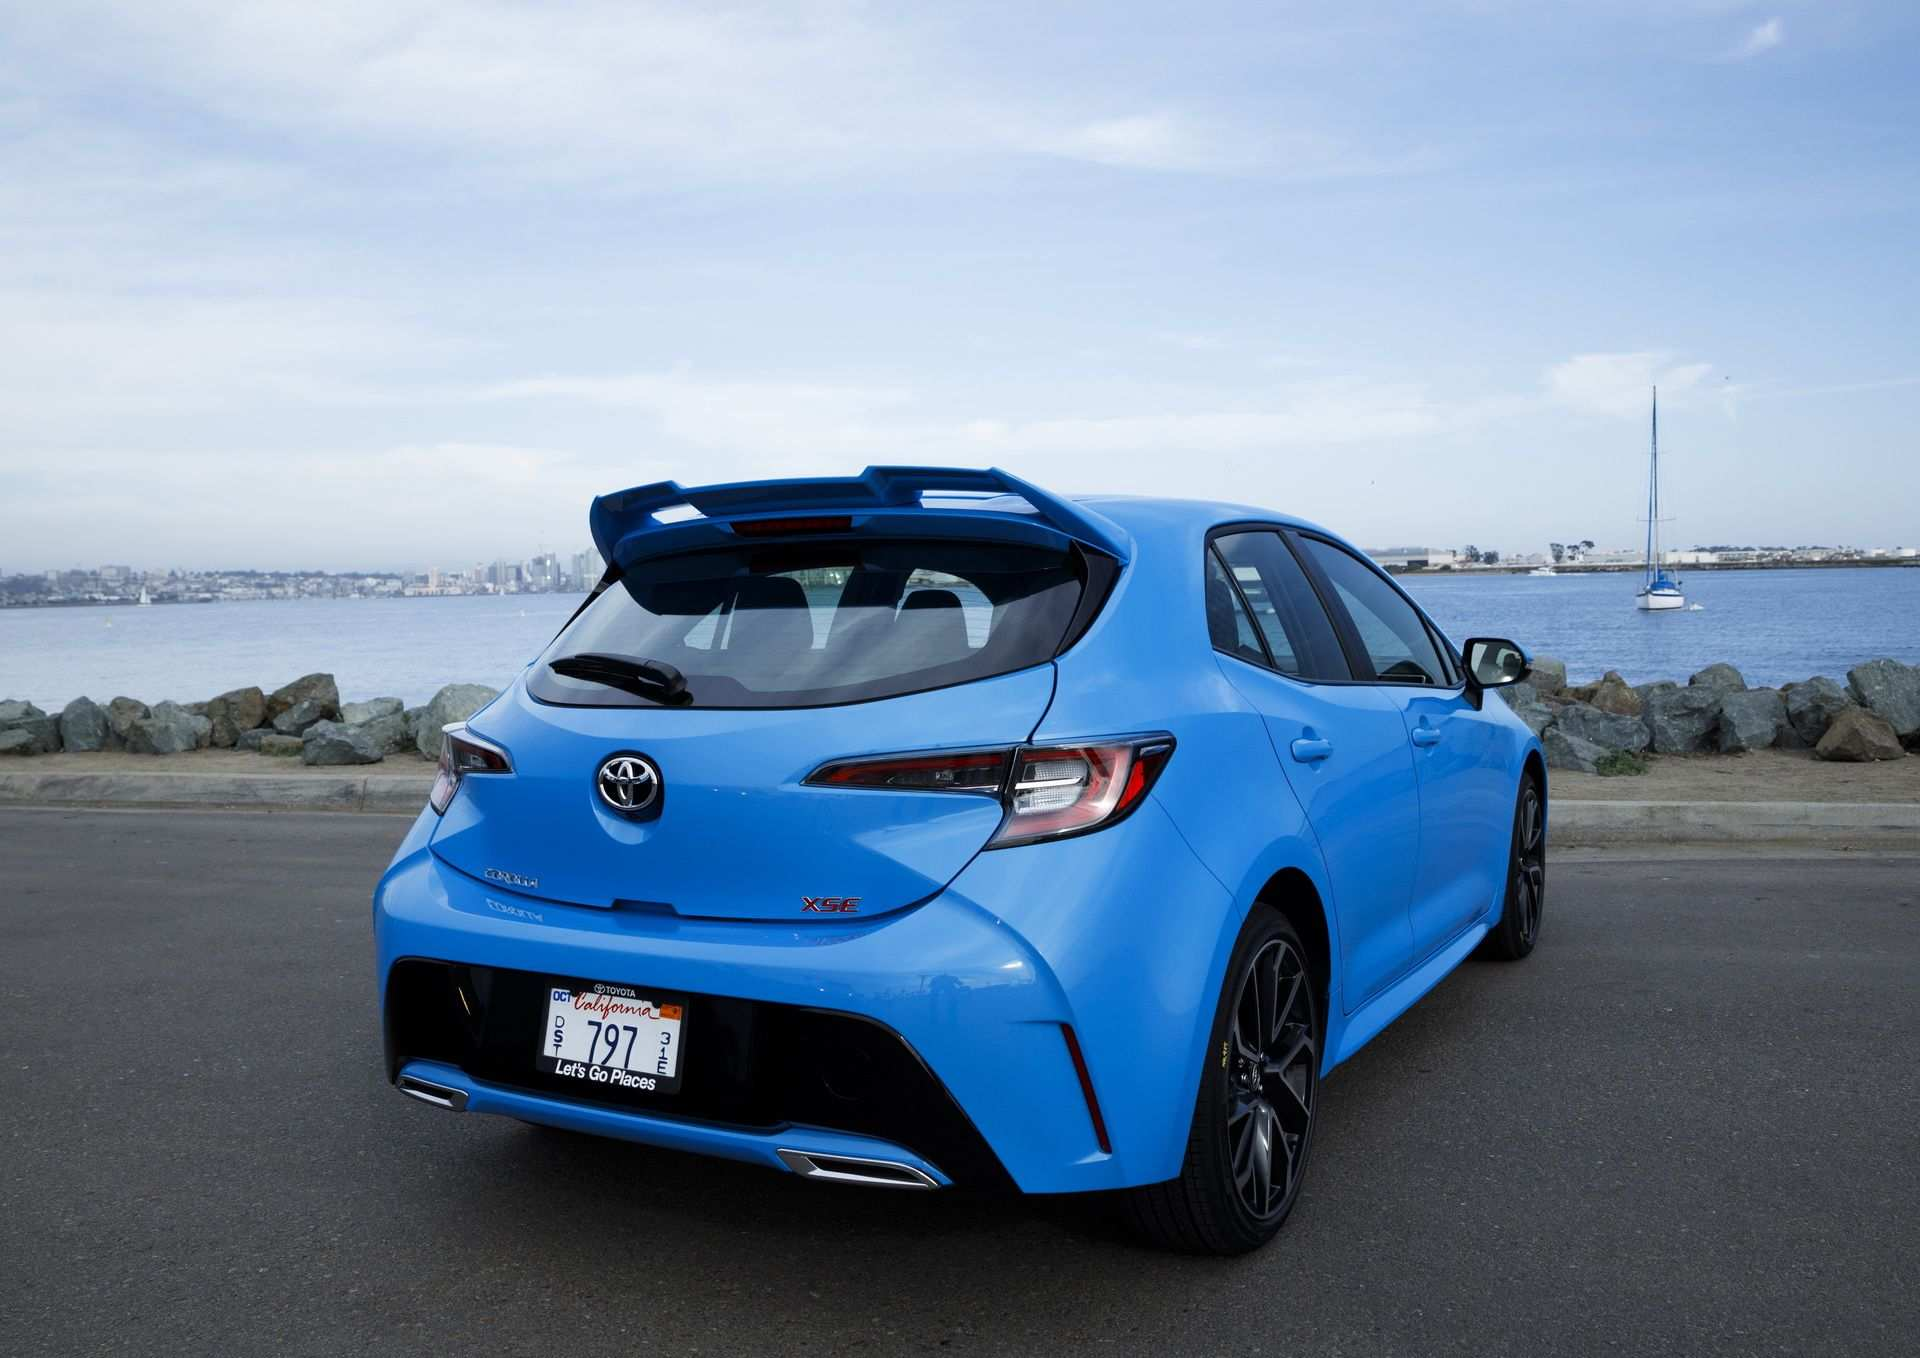 86 The Best 2020 Toyota Corolla Hatchback Prices